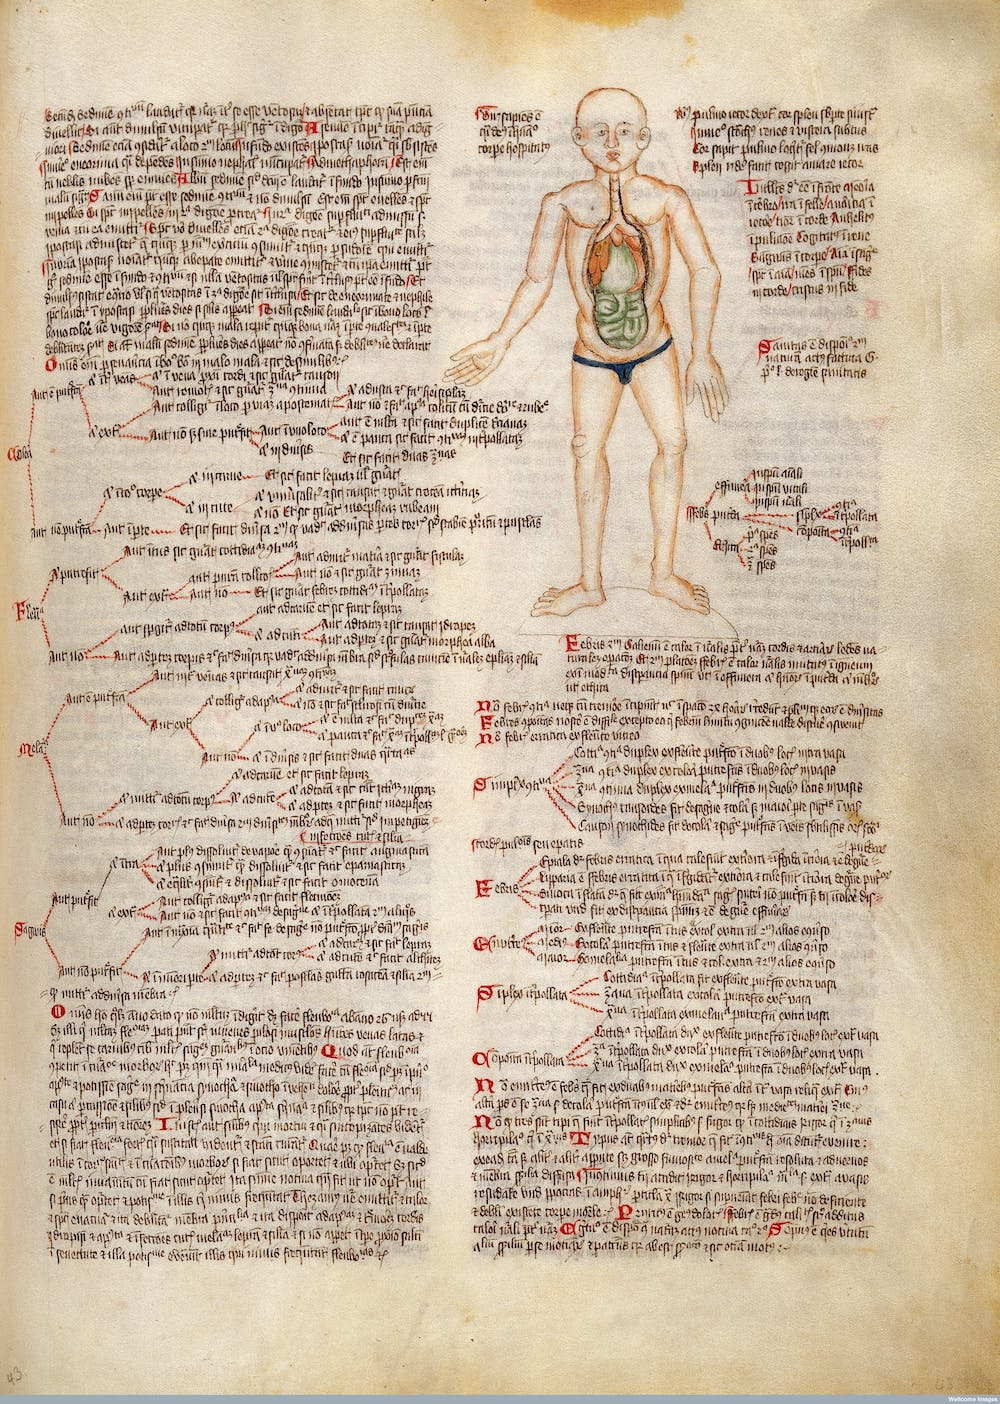 medieval medicine its mysteries and science